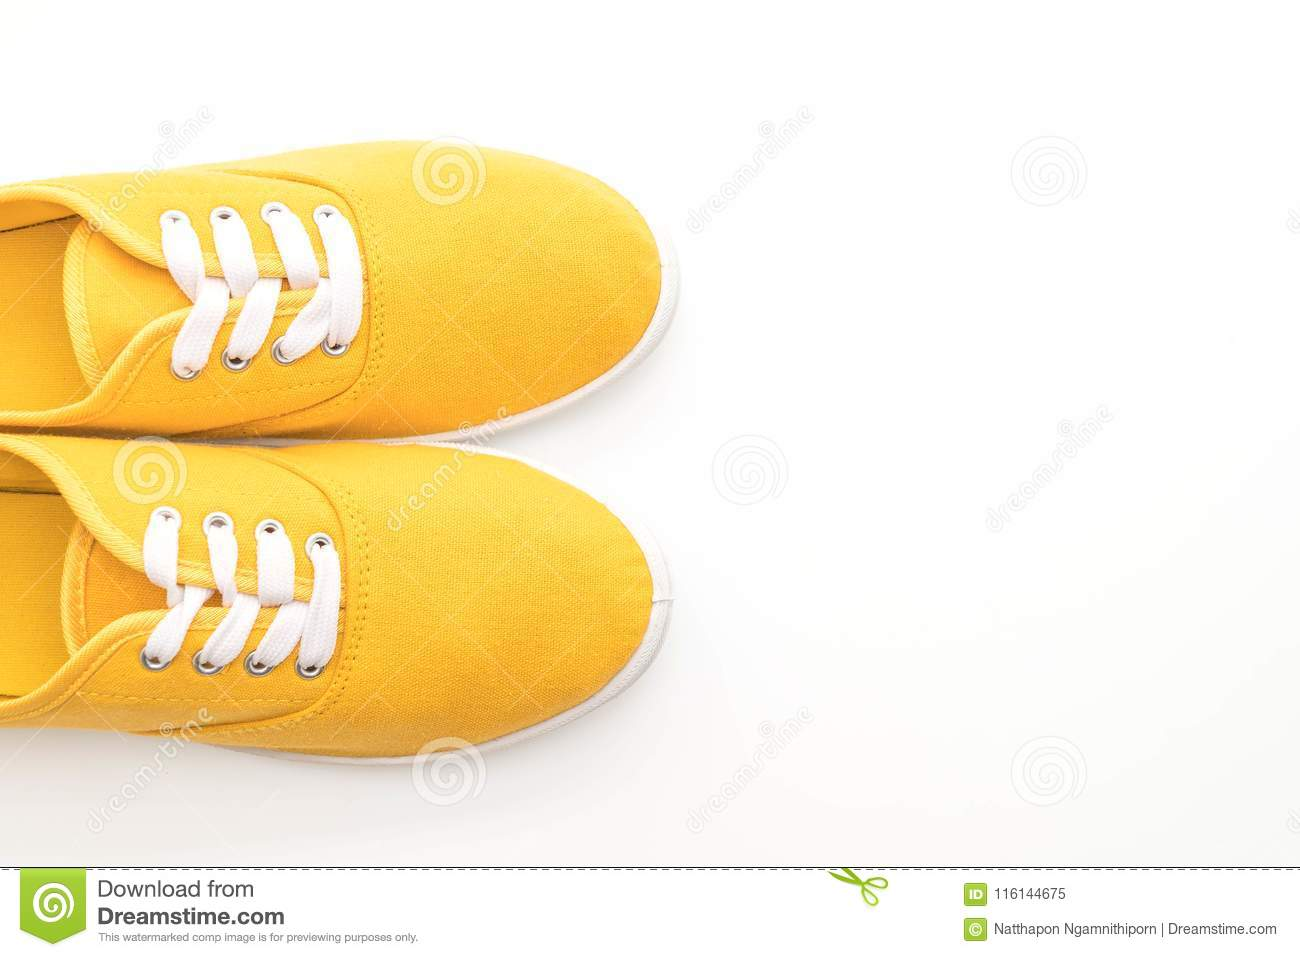 06bddc79a8eda1 Yellow Sneakers On White Background Stock Image - Image of clothing ...